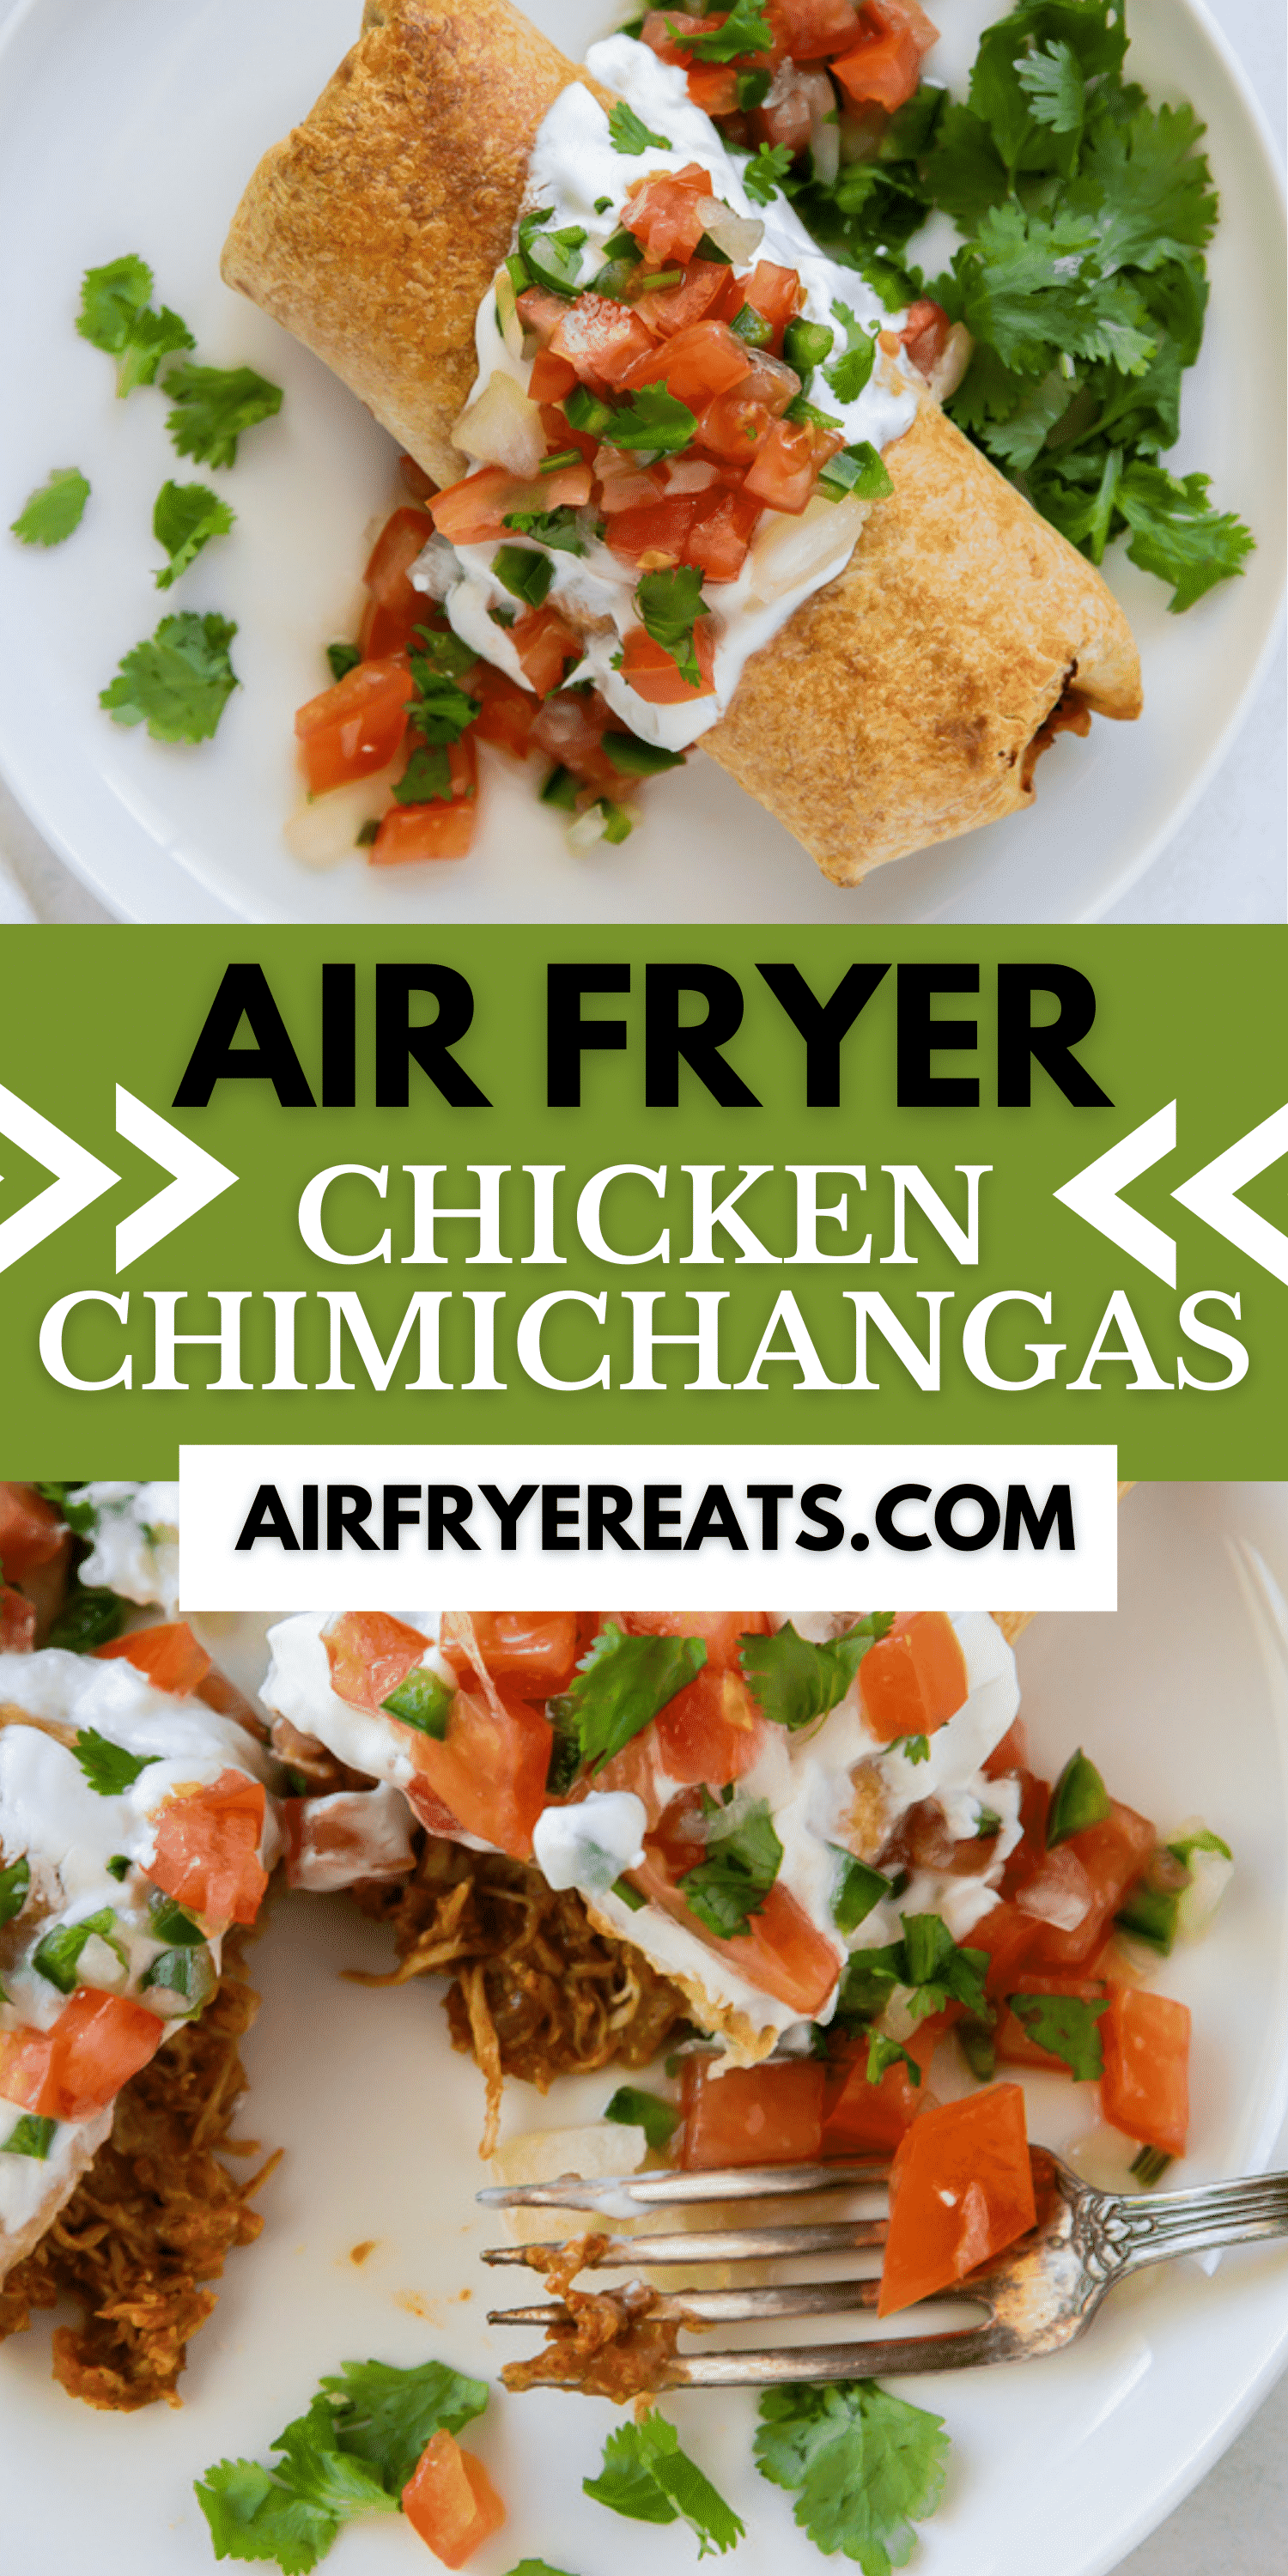 Air Fryer Chicken Chimichangas are stuffed full of Mexican inspired ingredients and crispy after air frying. No need for take out, just take out your air fryer. #Airfryer #mexican #texmex via @vegetarianmamma